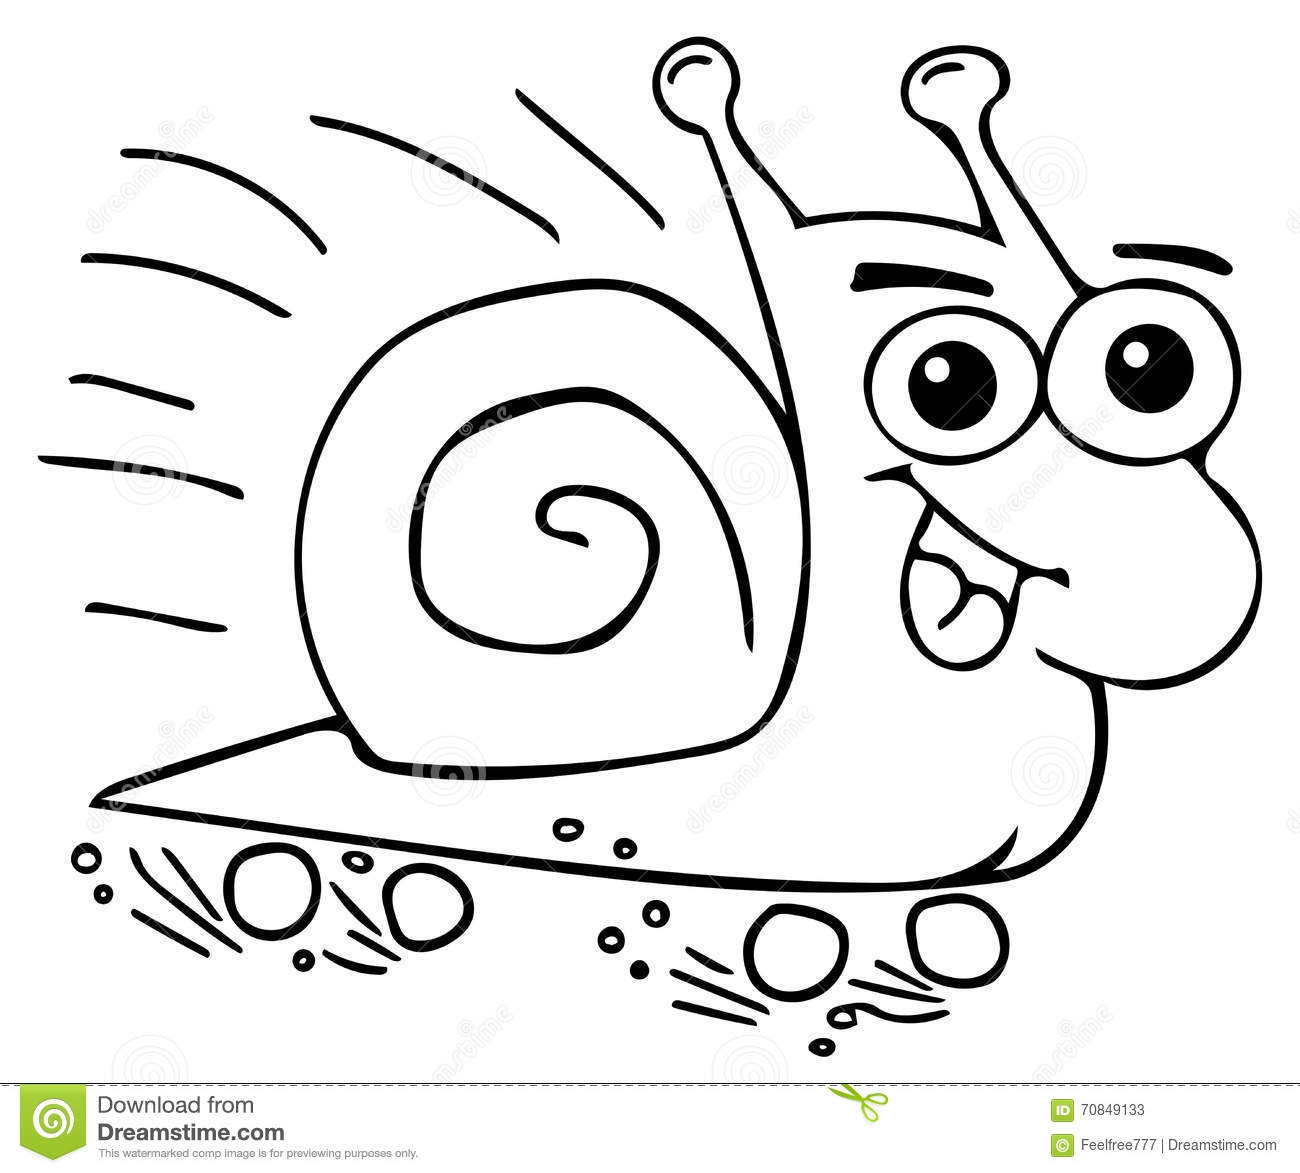 Royalty Free Illustration Download Funny Snail Coloring Pages